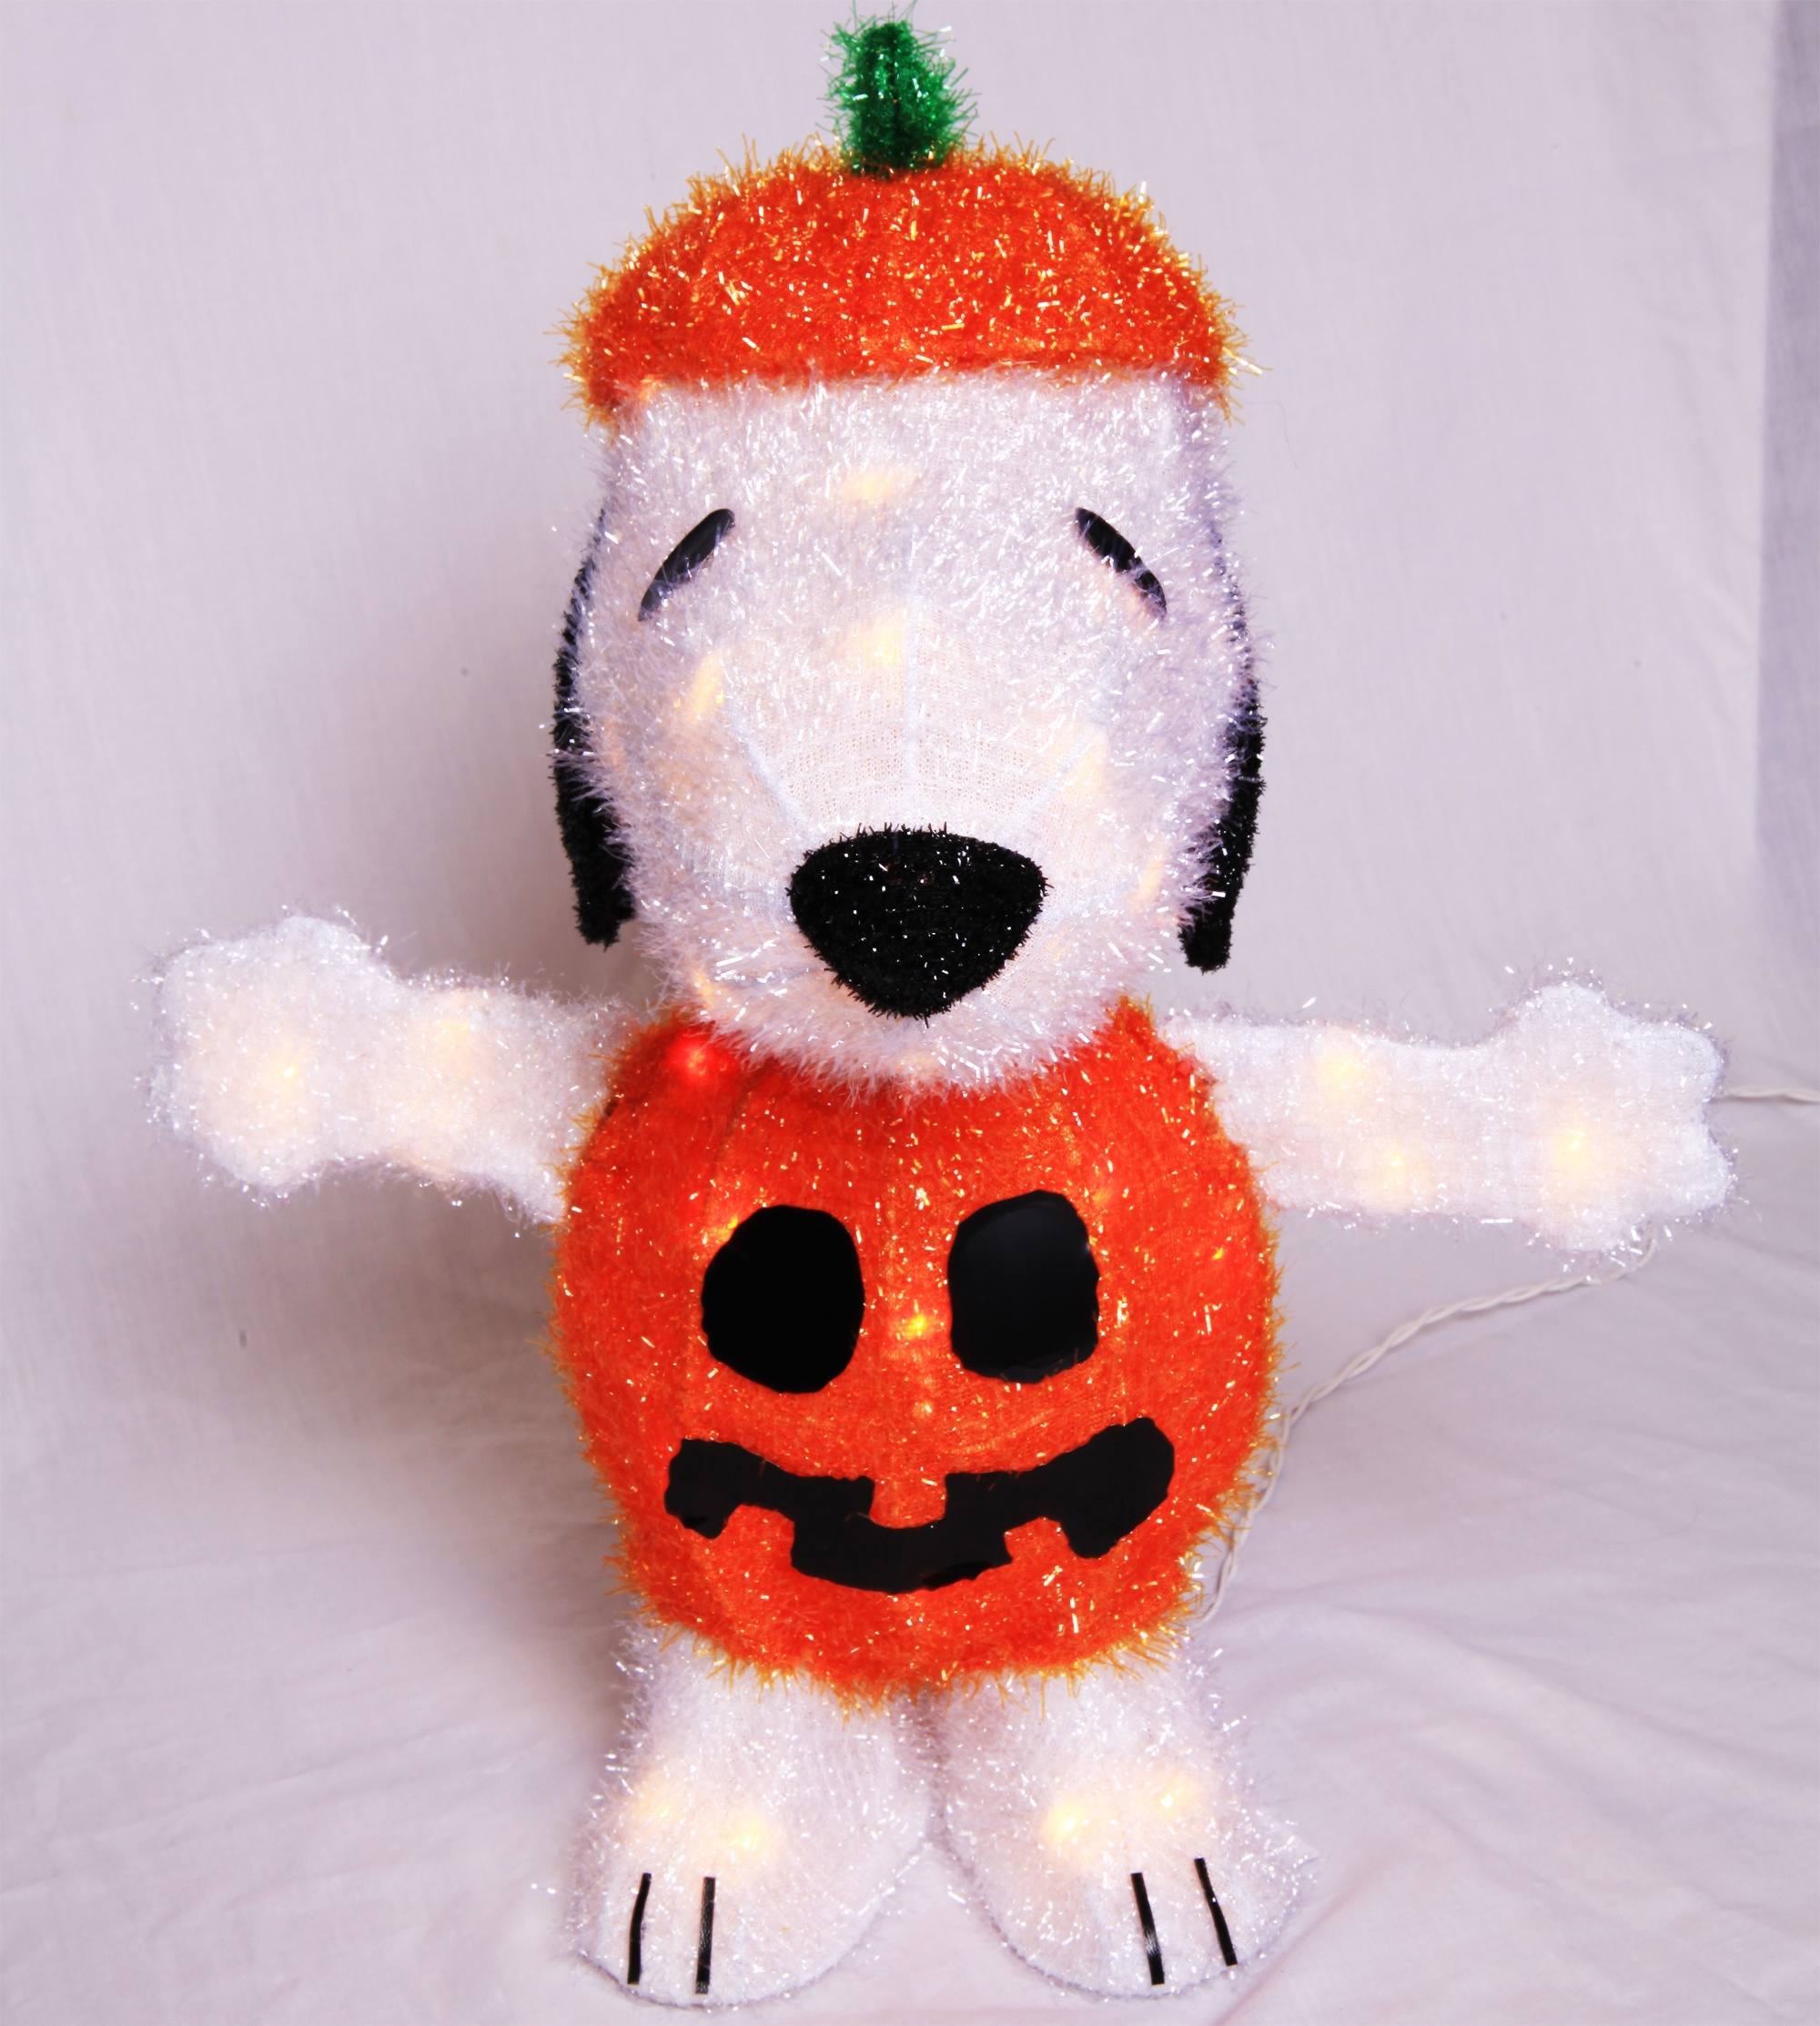 Halloween Decorations - Light Up Snoopy in Pumpkin Costume Yard Art